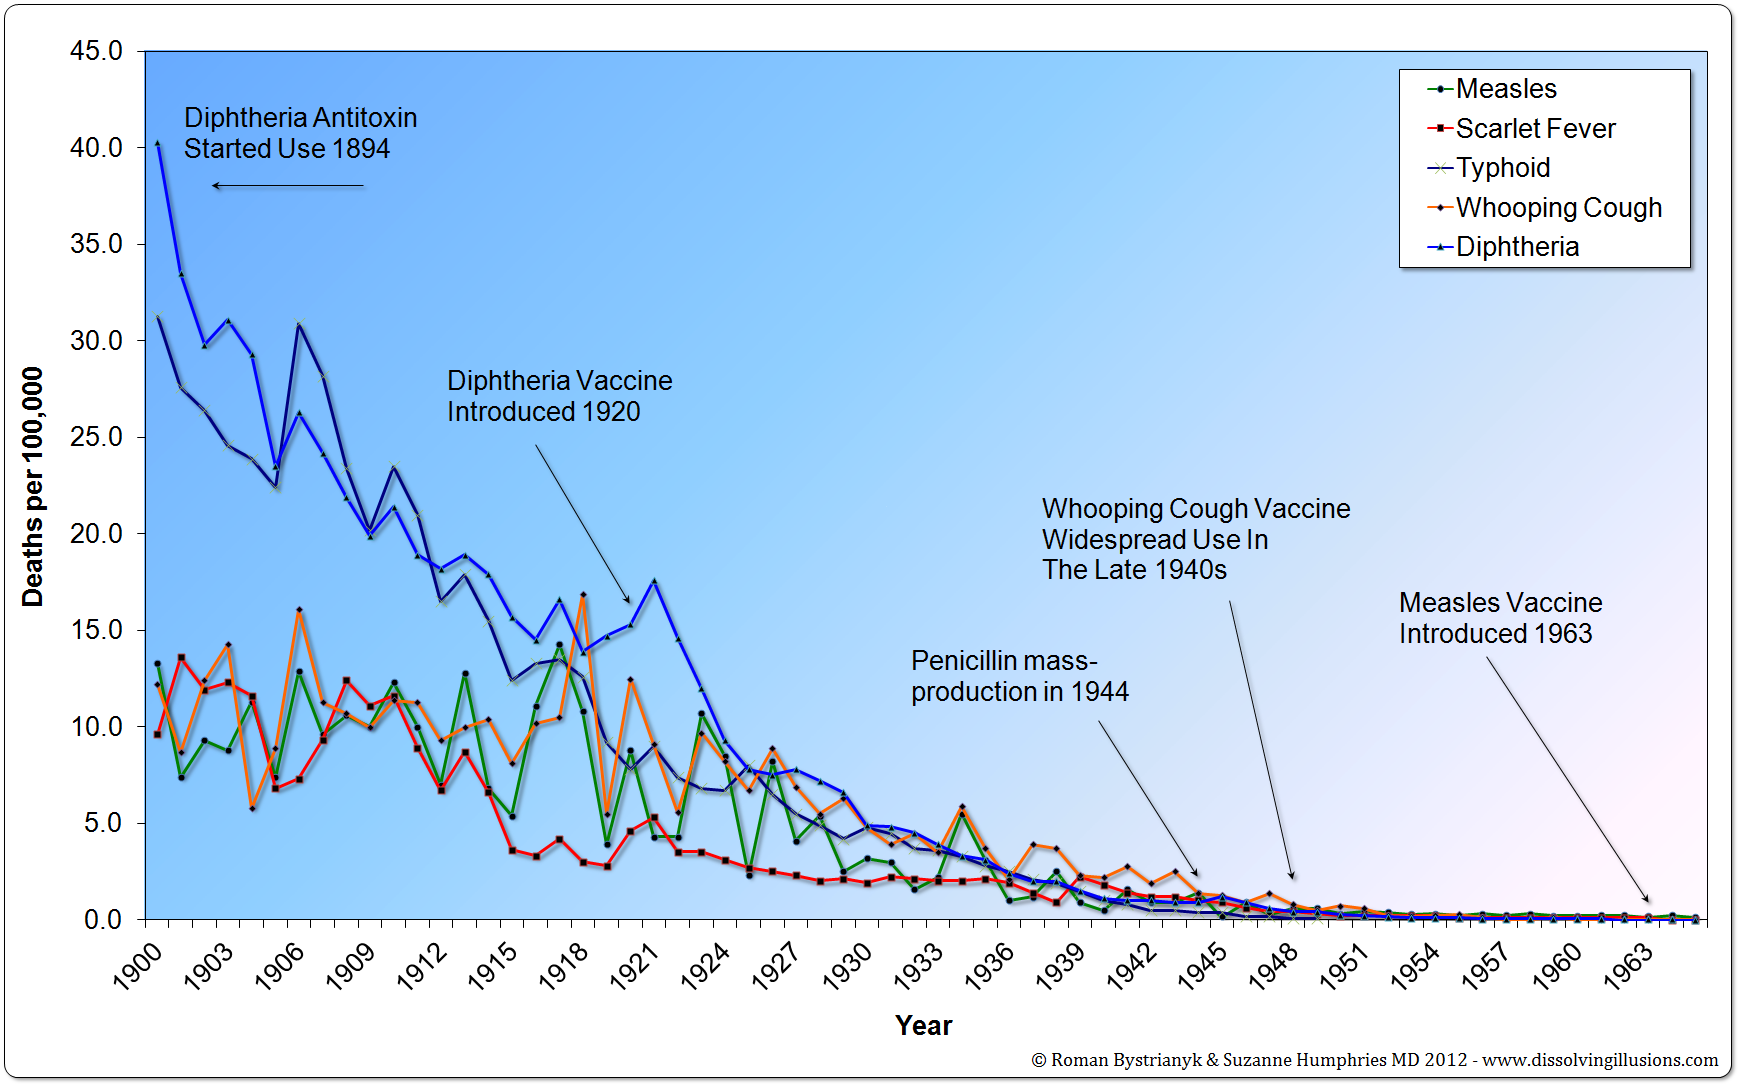 United States mortality rates from various infectious diseases from 1900 to 1965